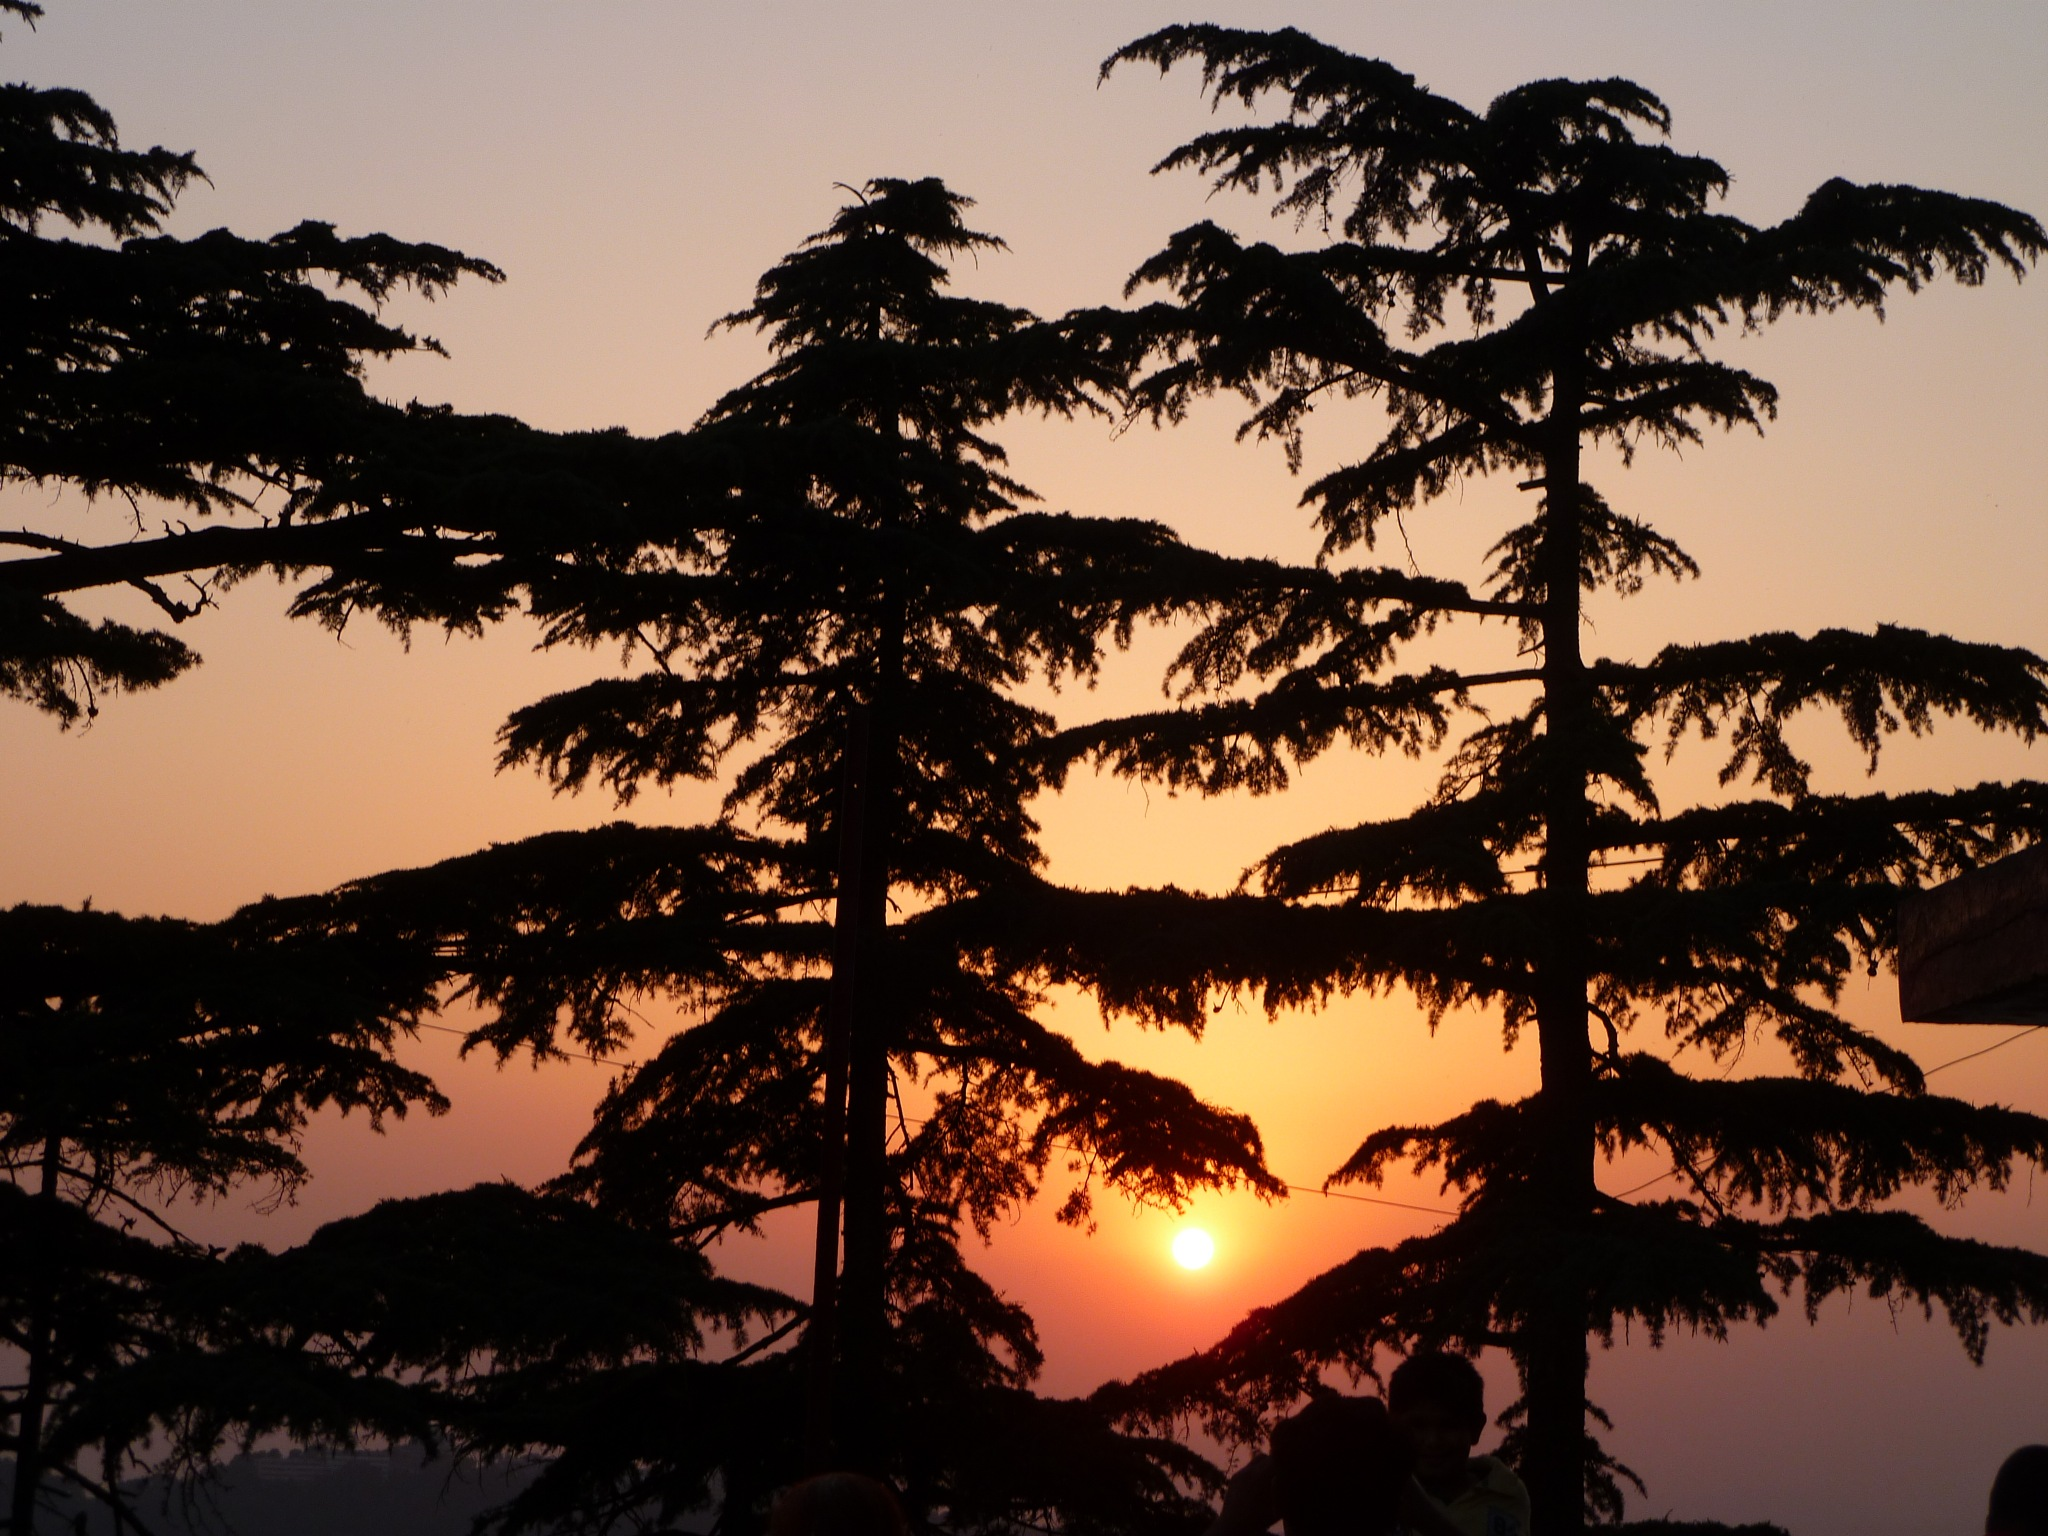 SUNSET by Susobhan Biswas